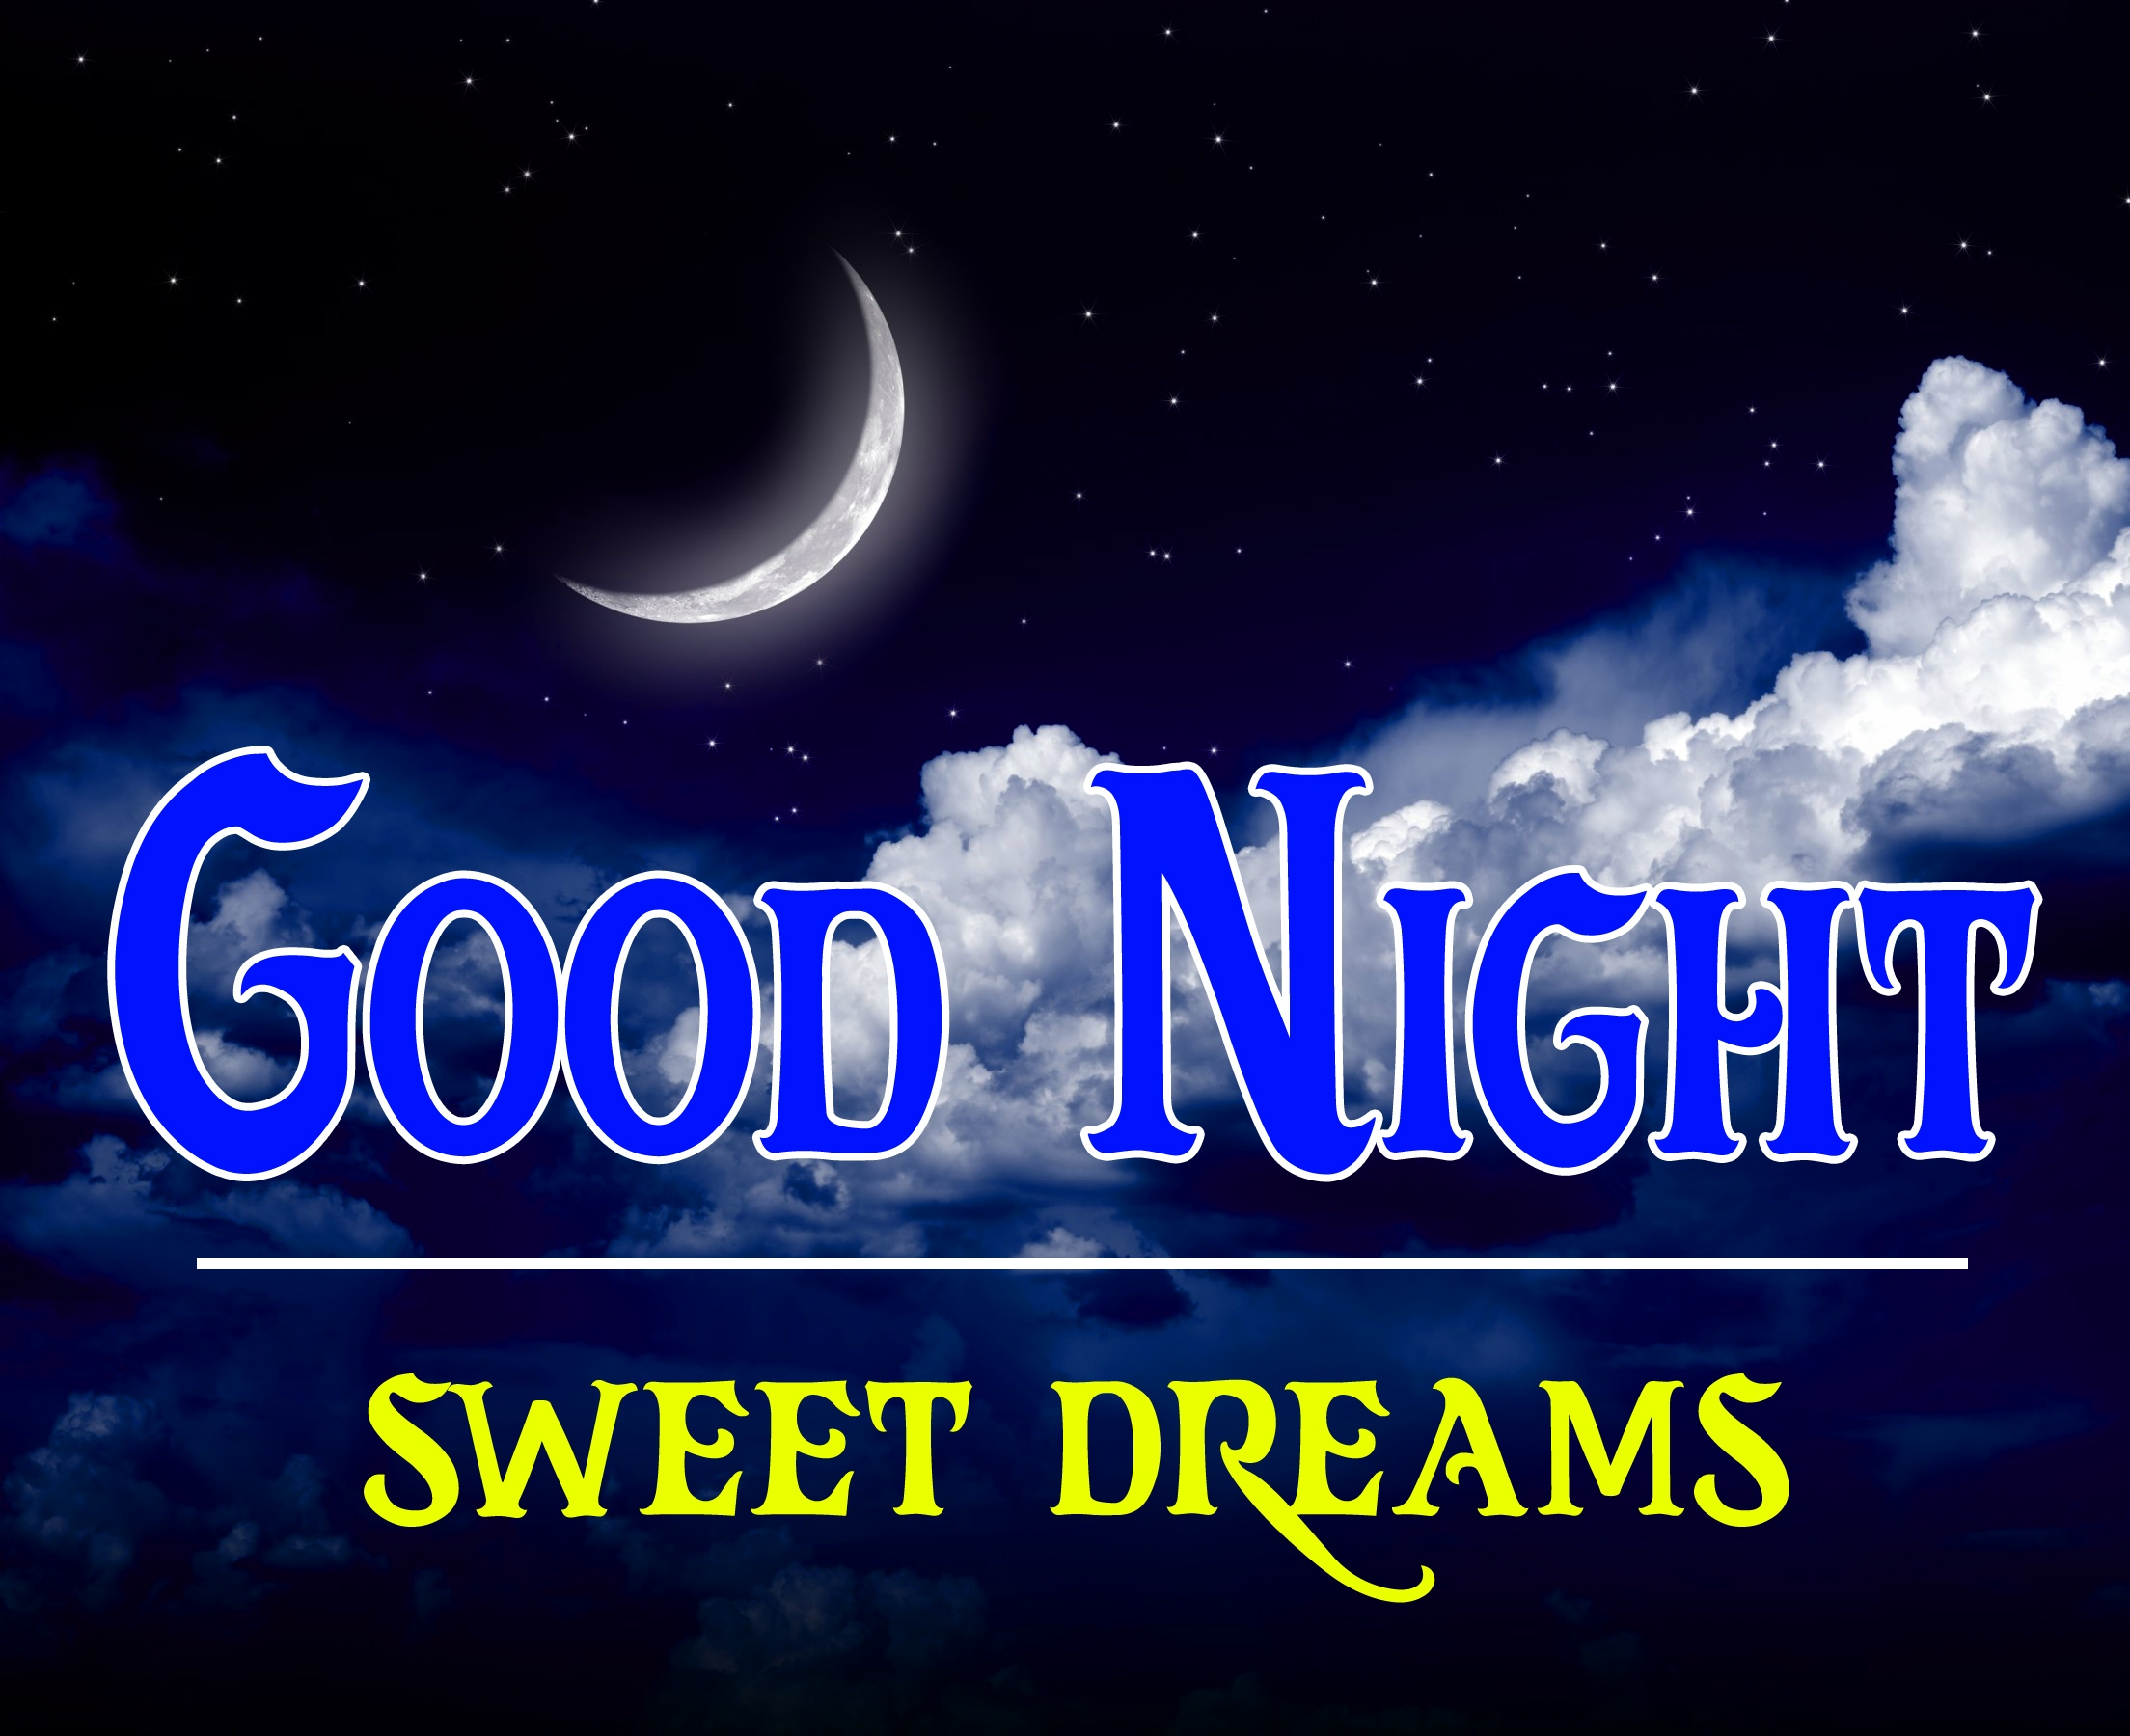 Good night wallpaper hd 57 1